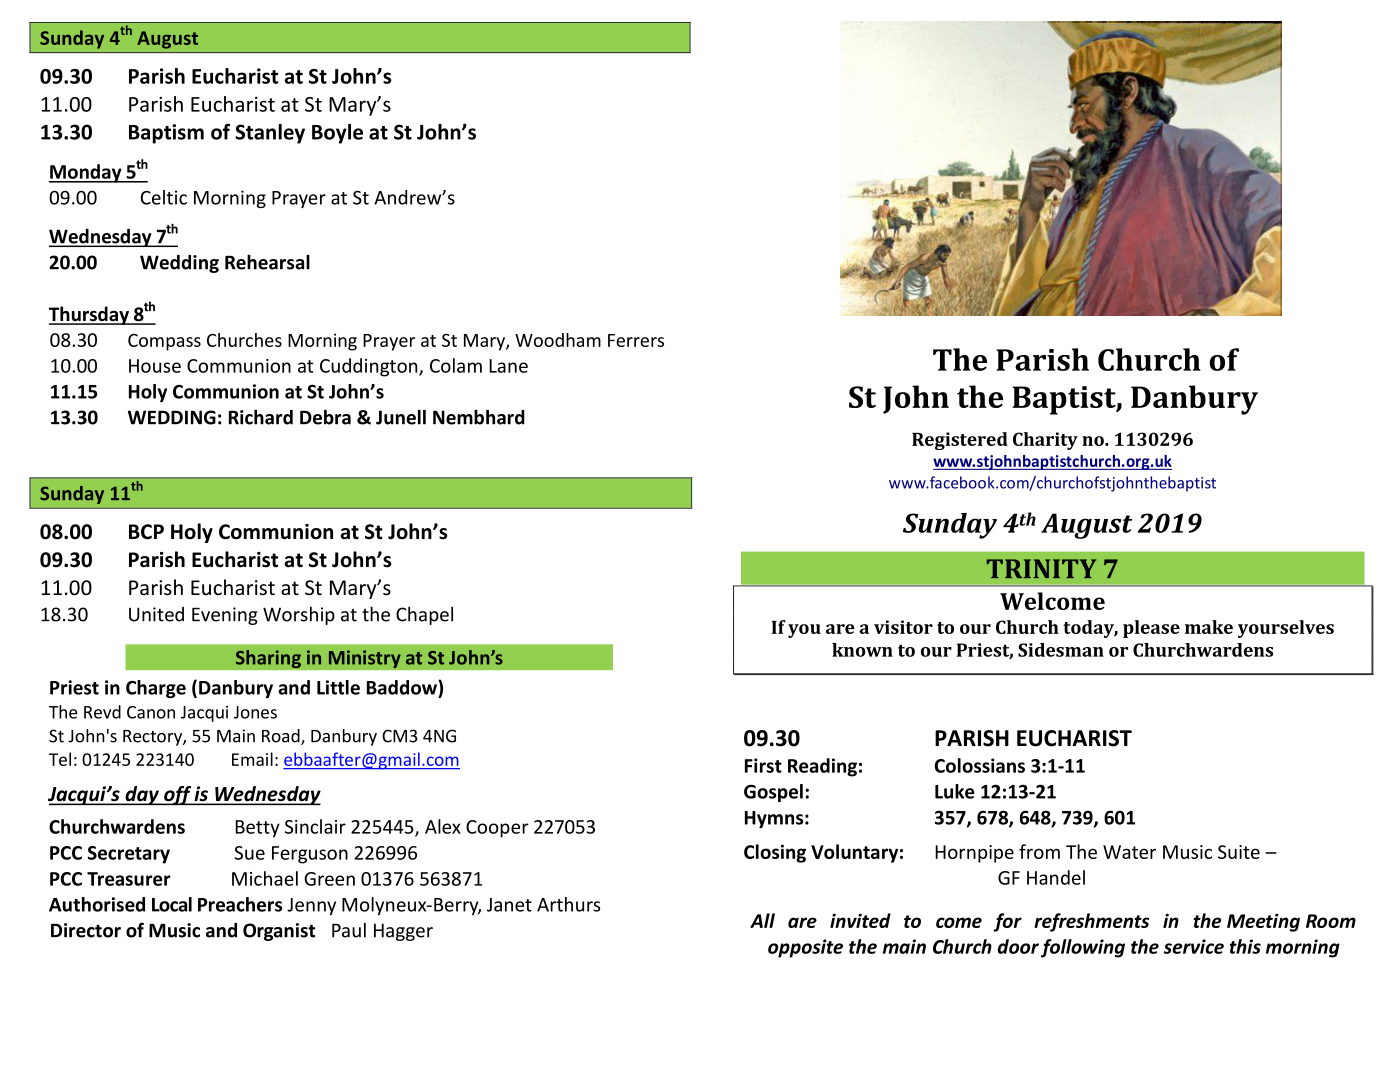 Pew leaflet 4th August 2019_1.PNG